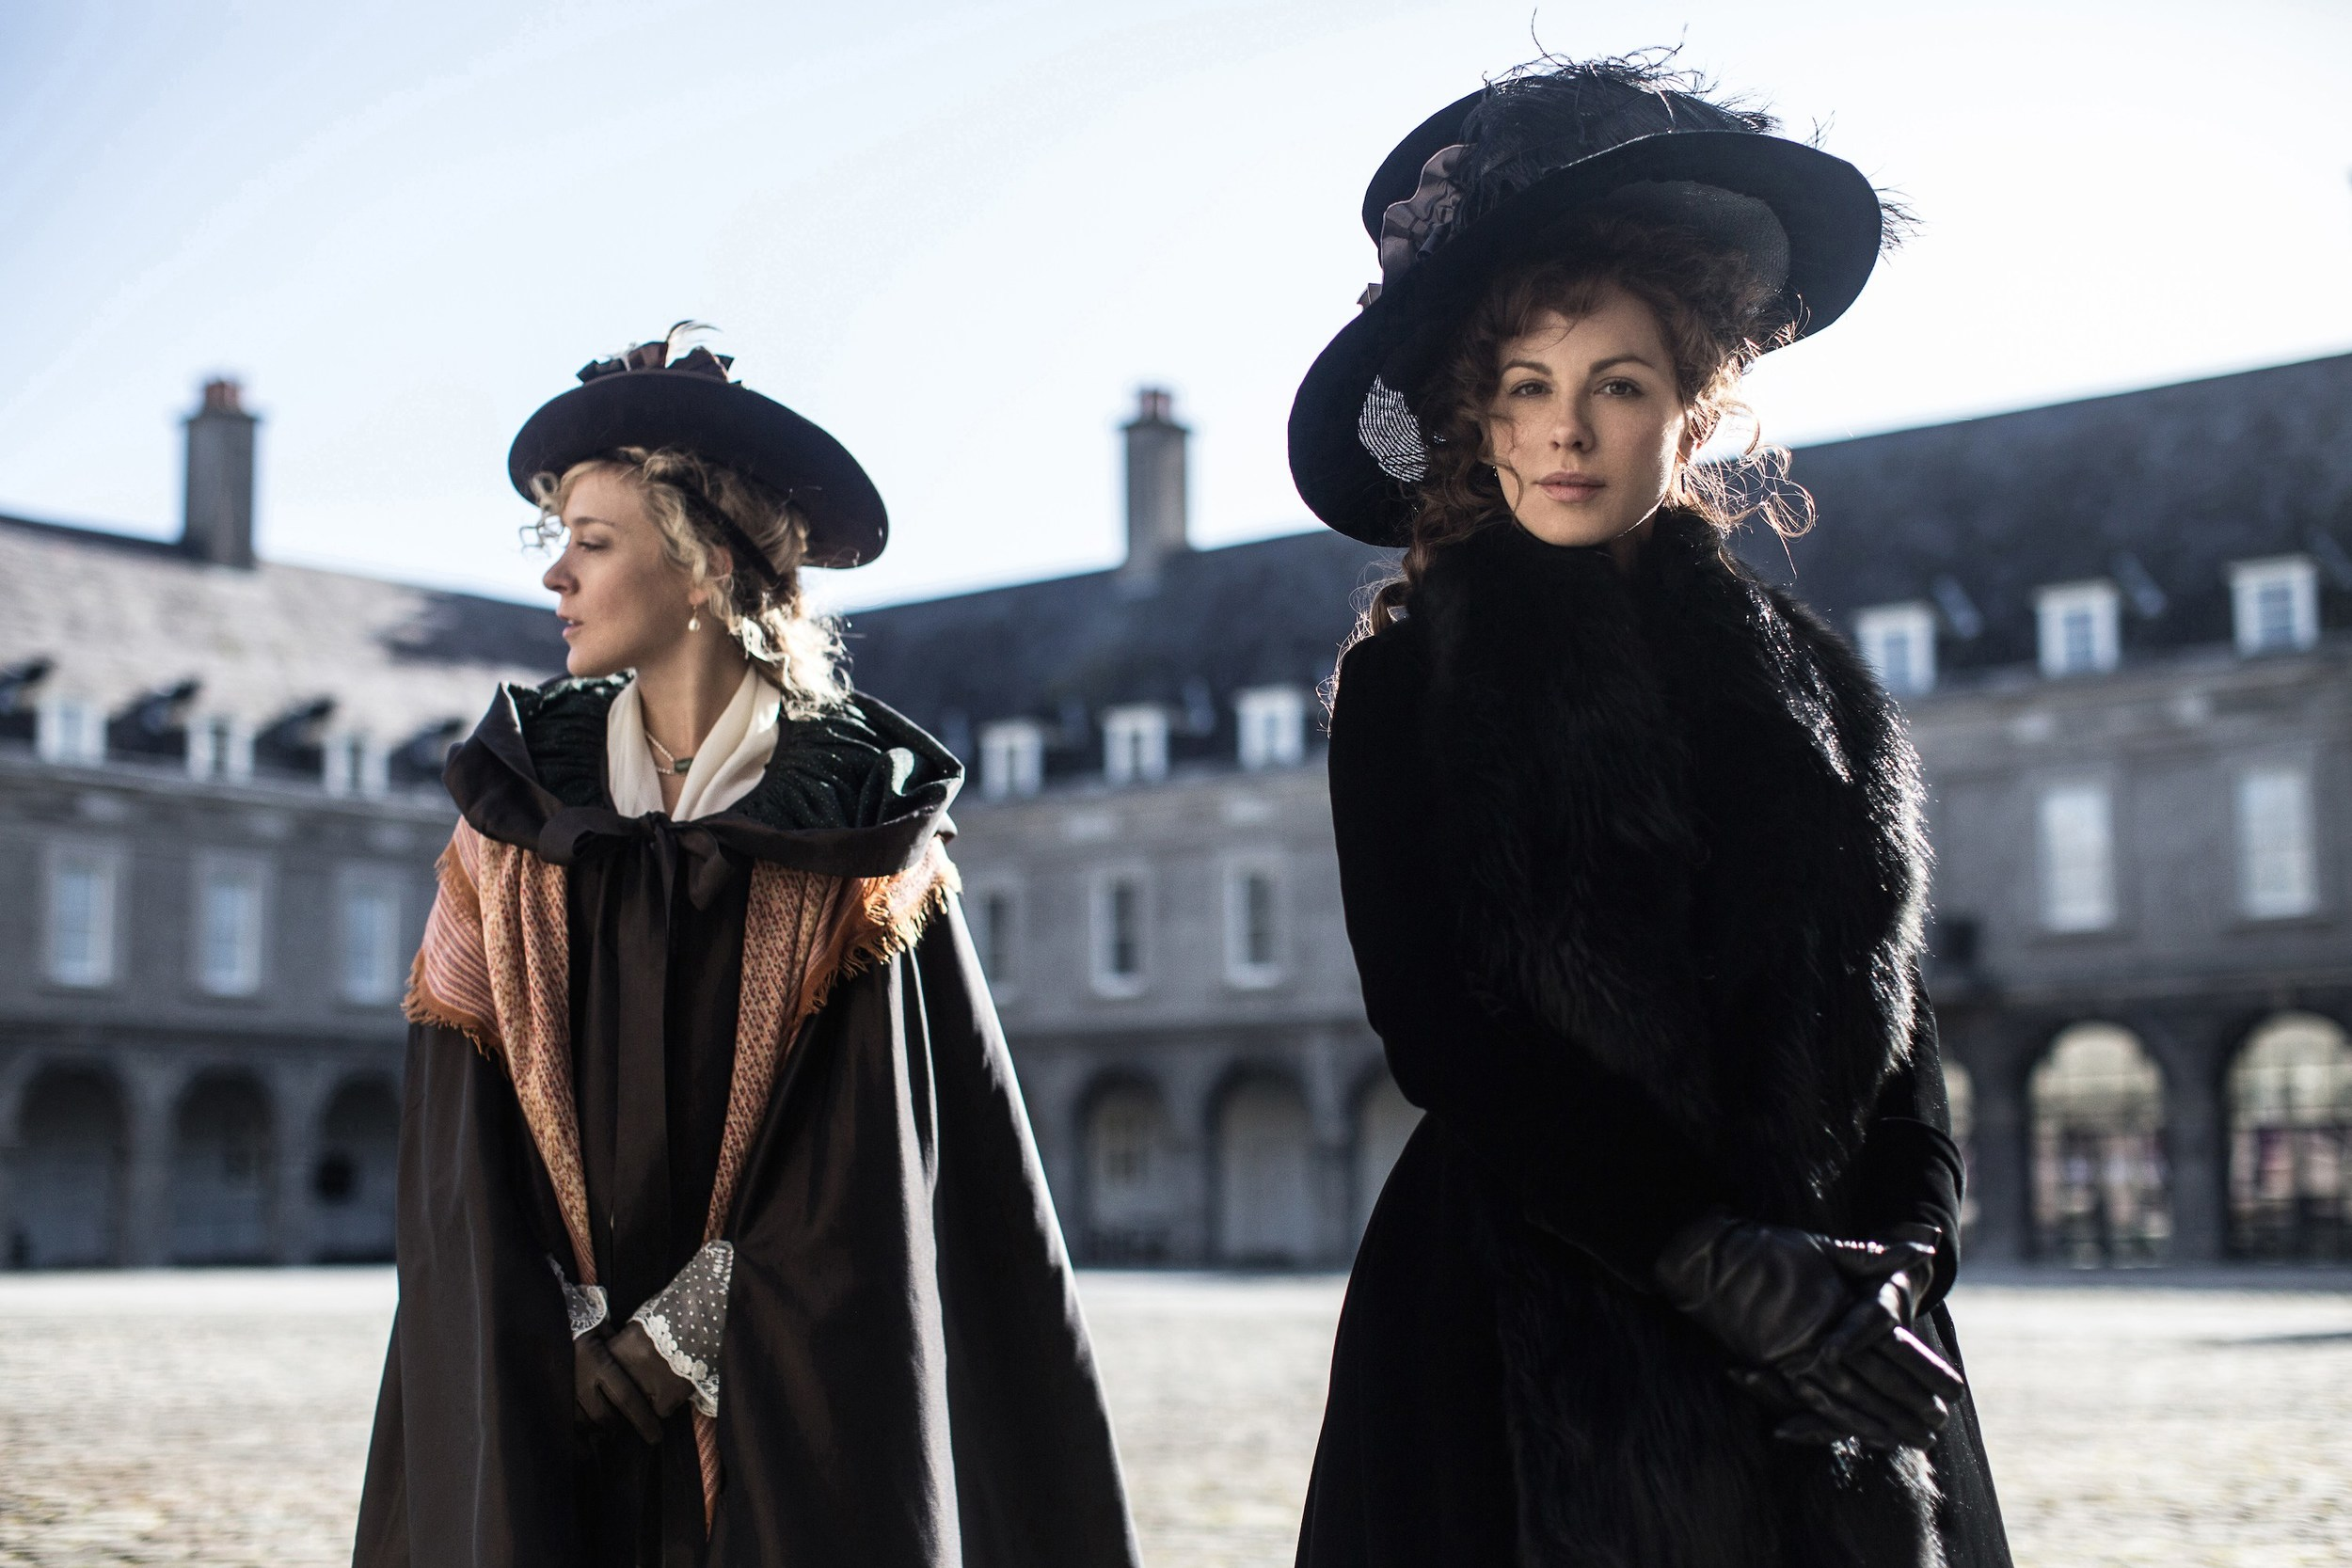 Chloe Sevigny and Kate Beckinsale in director Whit Sillman's  Love & Friendship